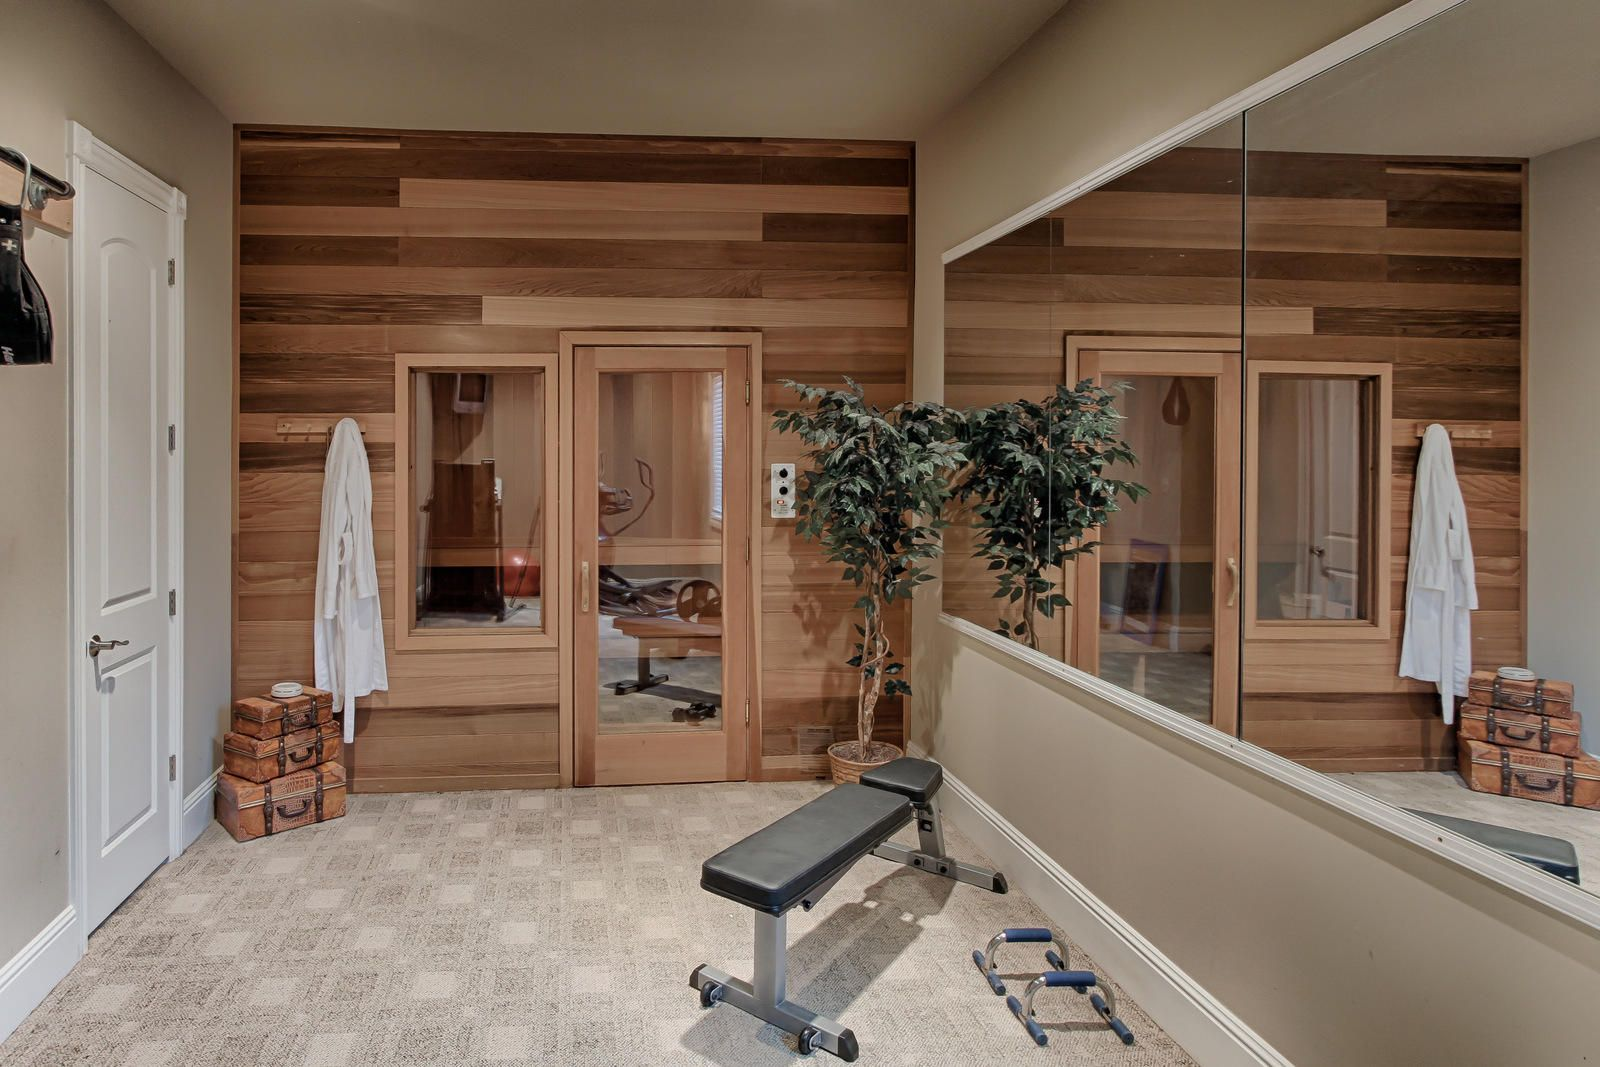 Sauna and workout room